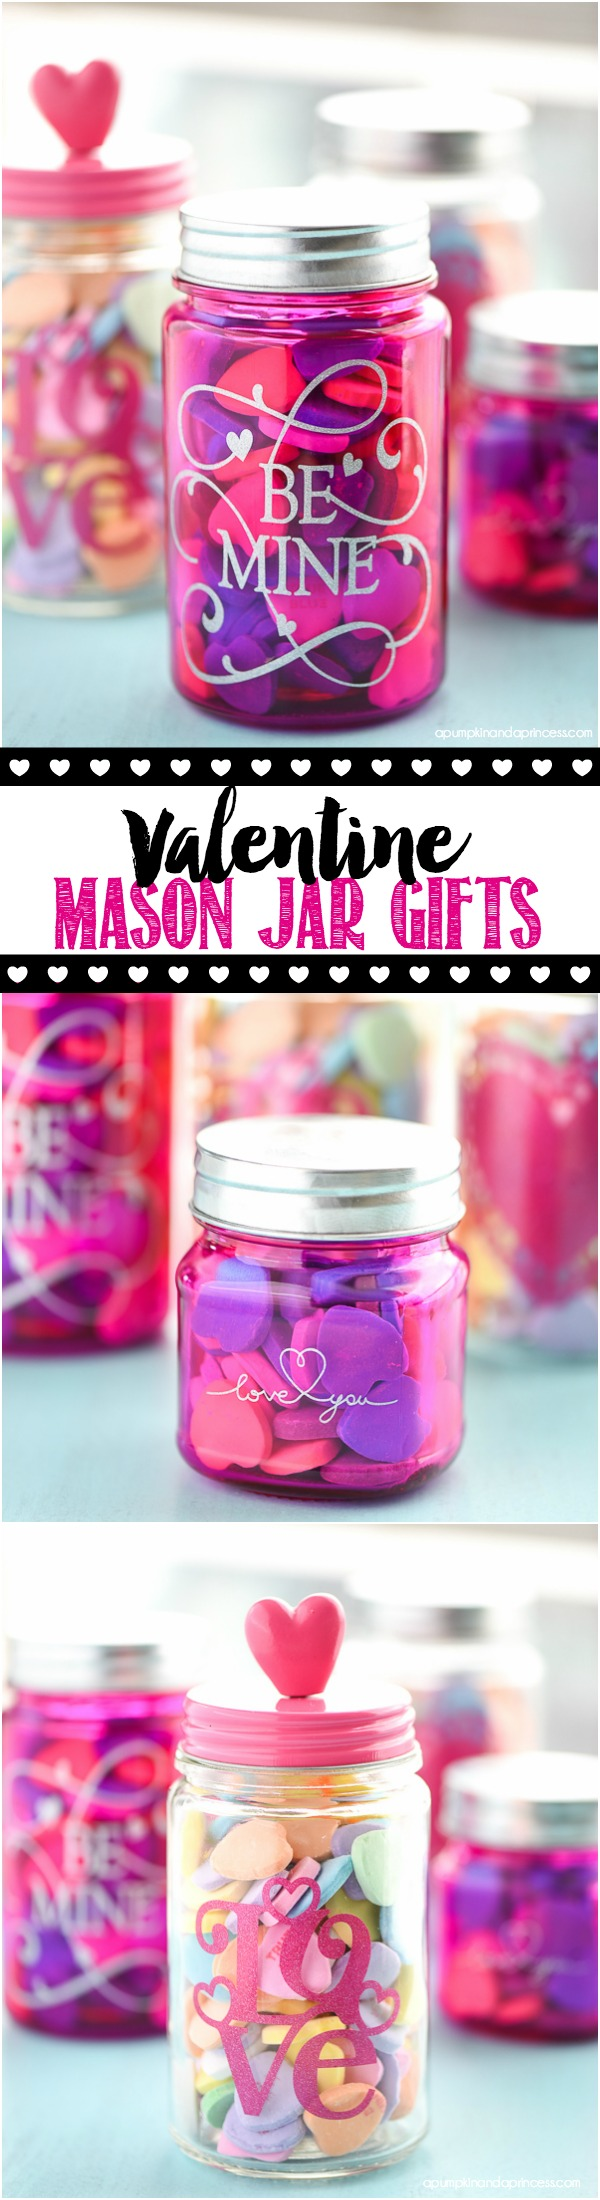 DIY Valentine's Day Mason Jar Gifts